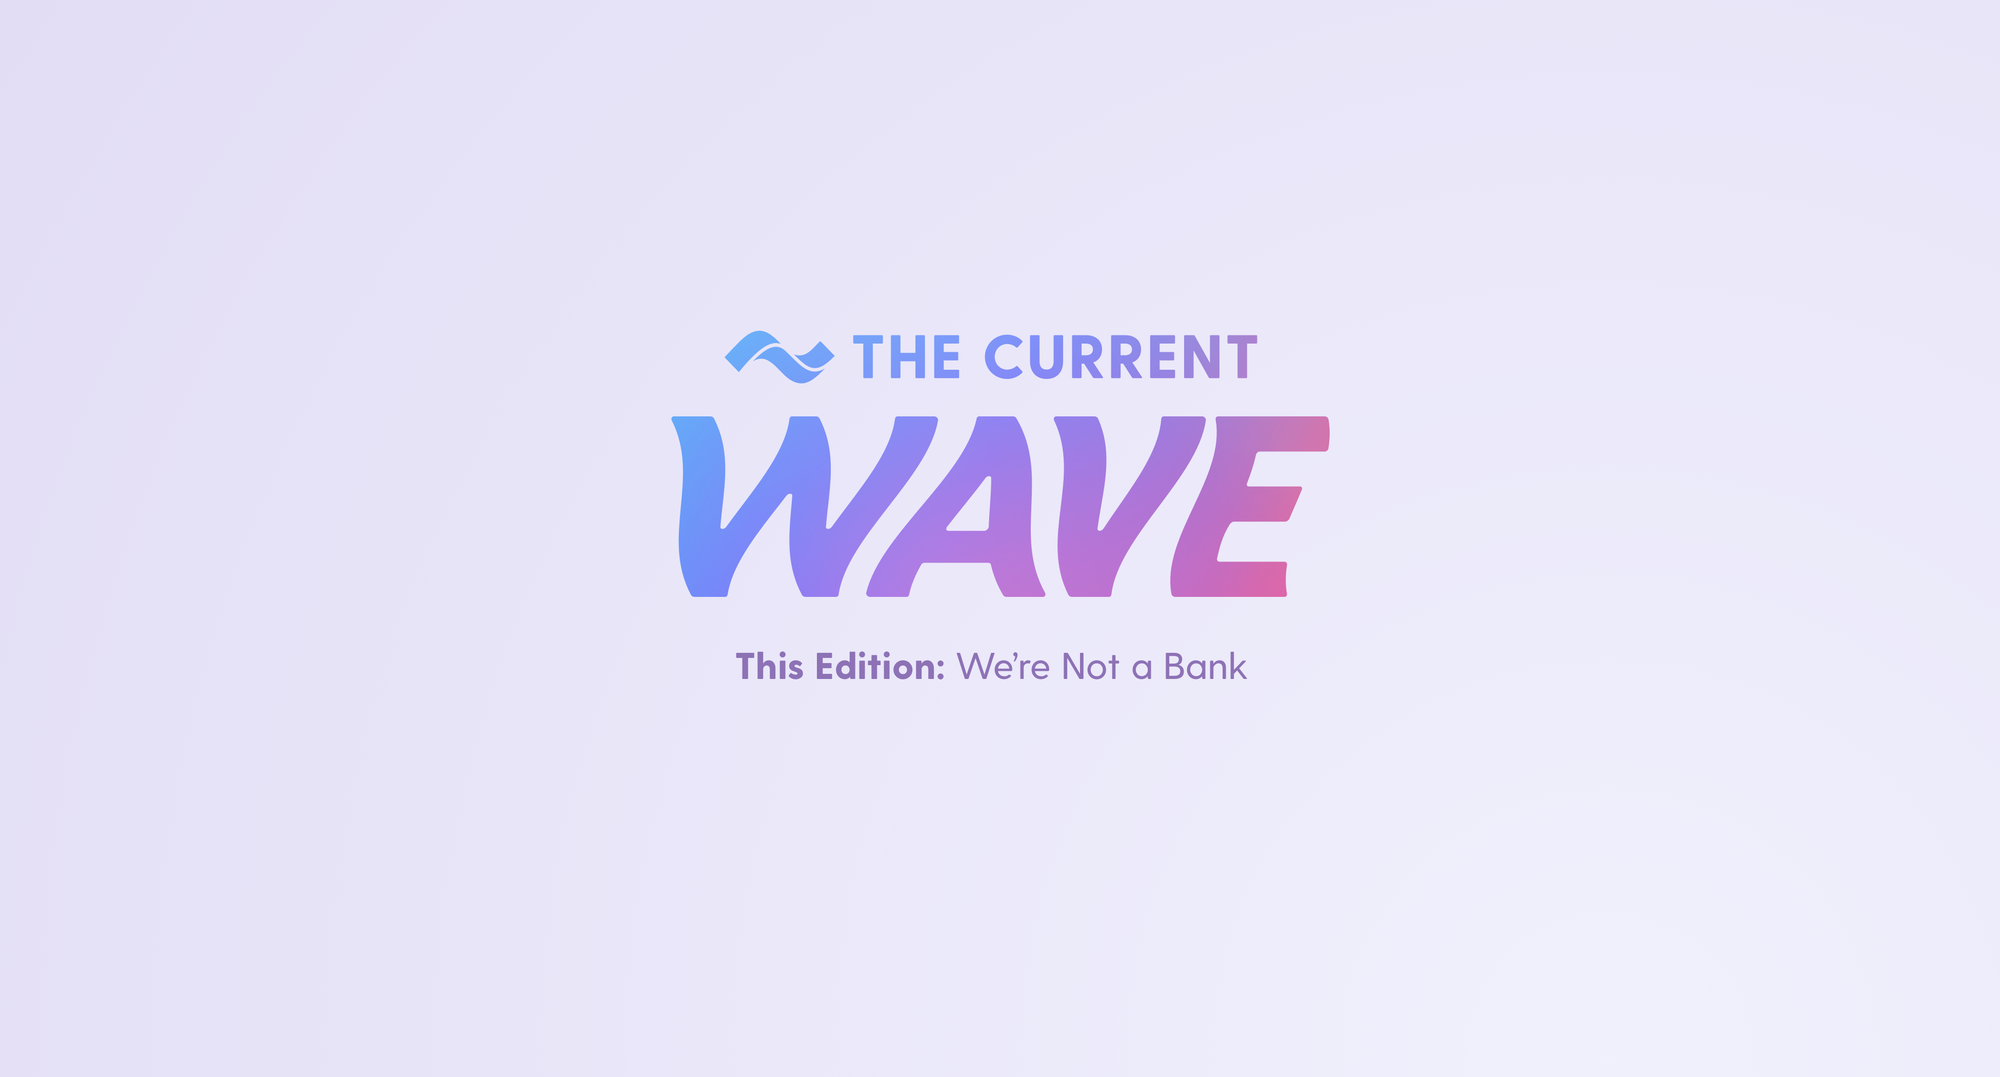 the-current-wave-what-do-you-think-we-are-a-bank